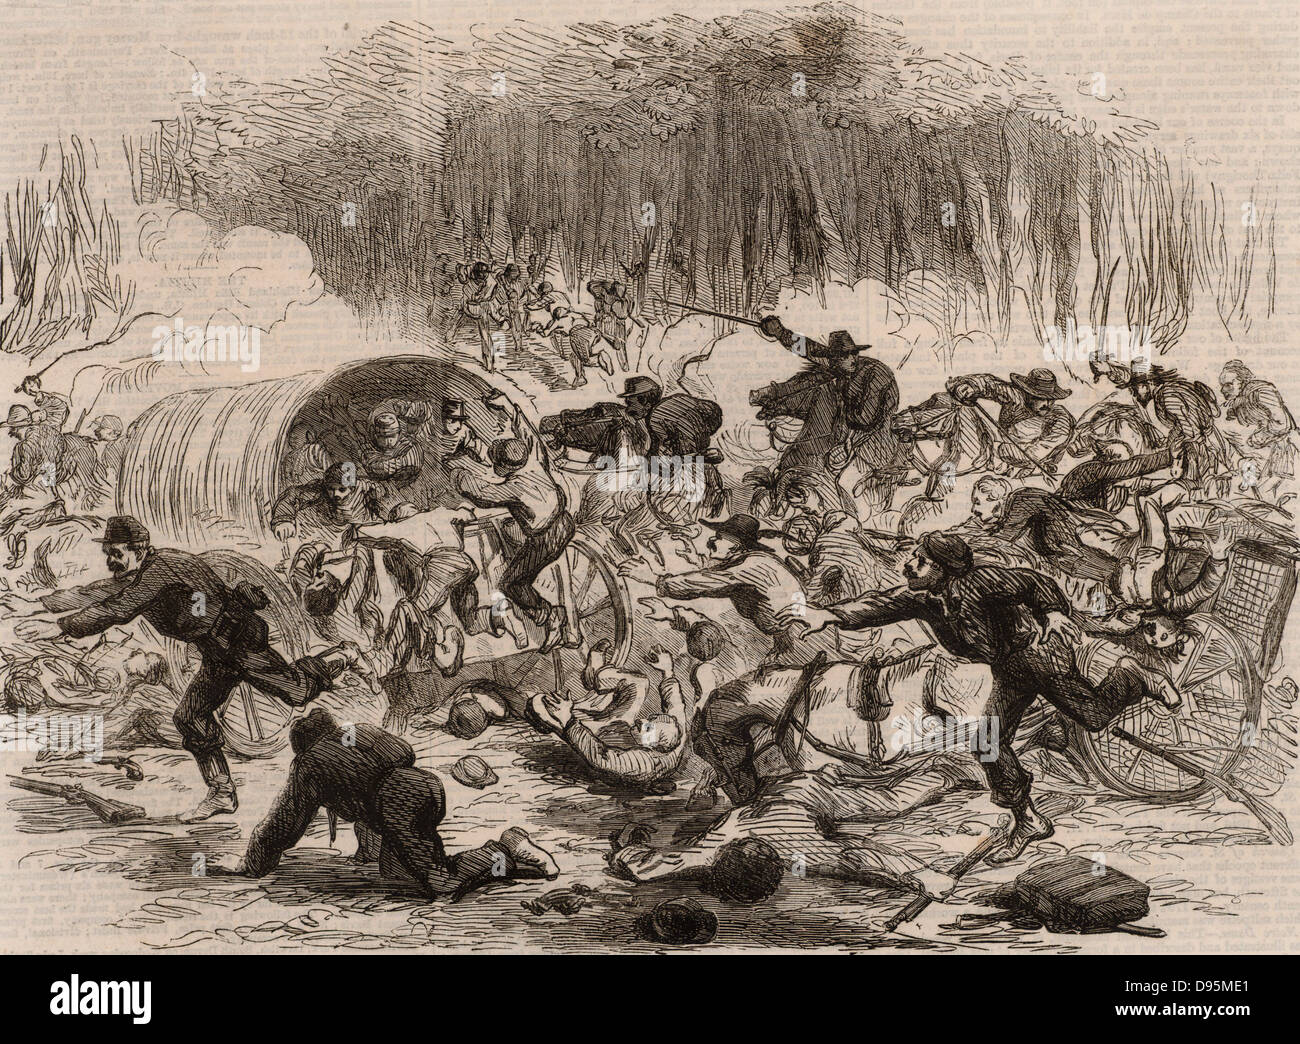 defeat in war. american civil war 18611865 first battle of bull run manassas virginia defeat and stampede the union troops 21 july in a